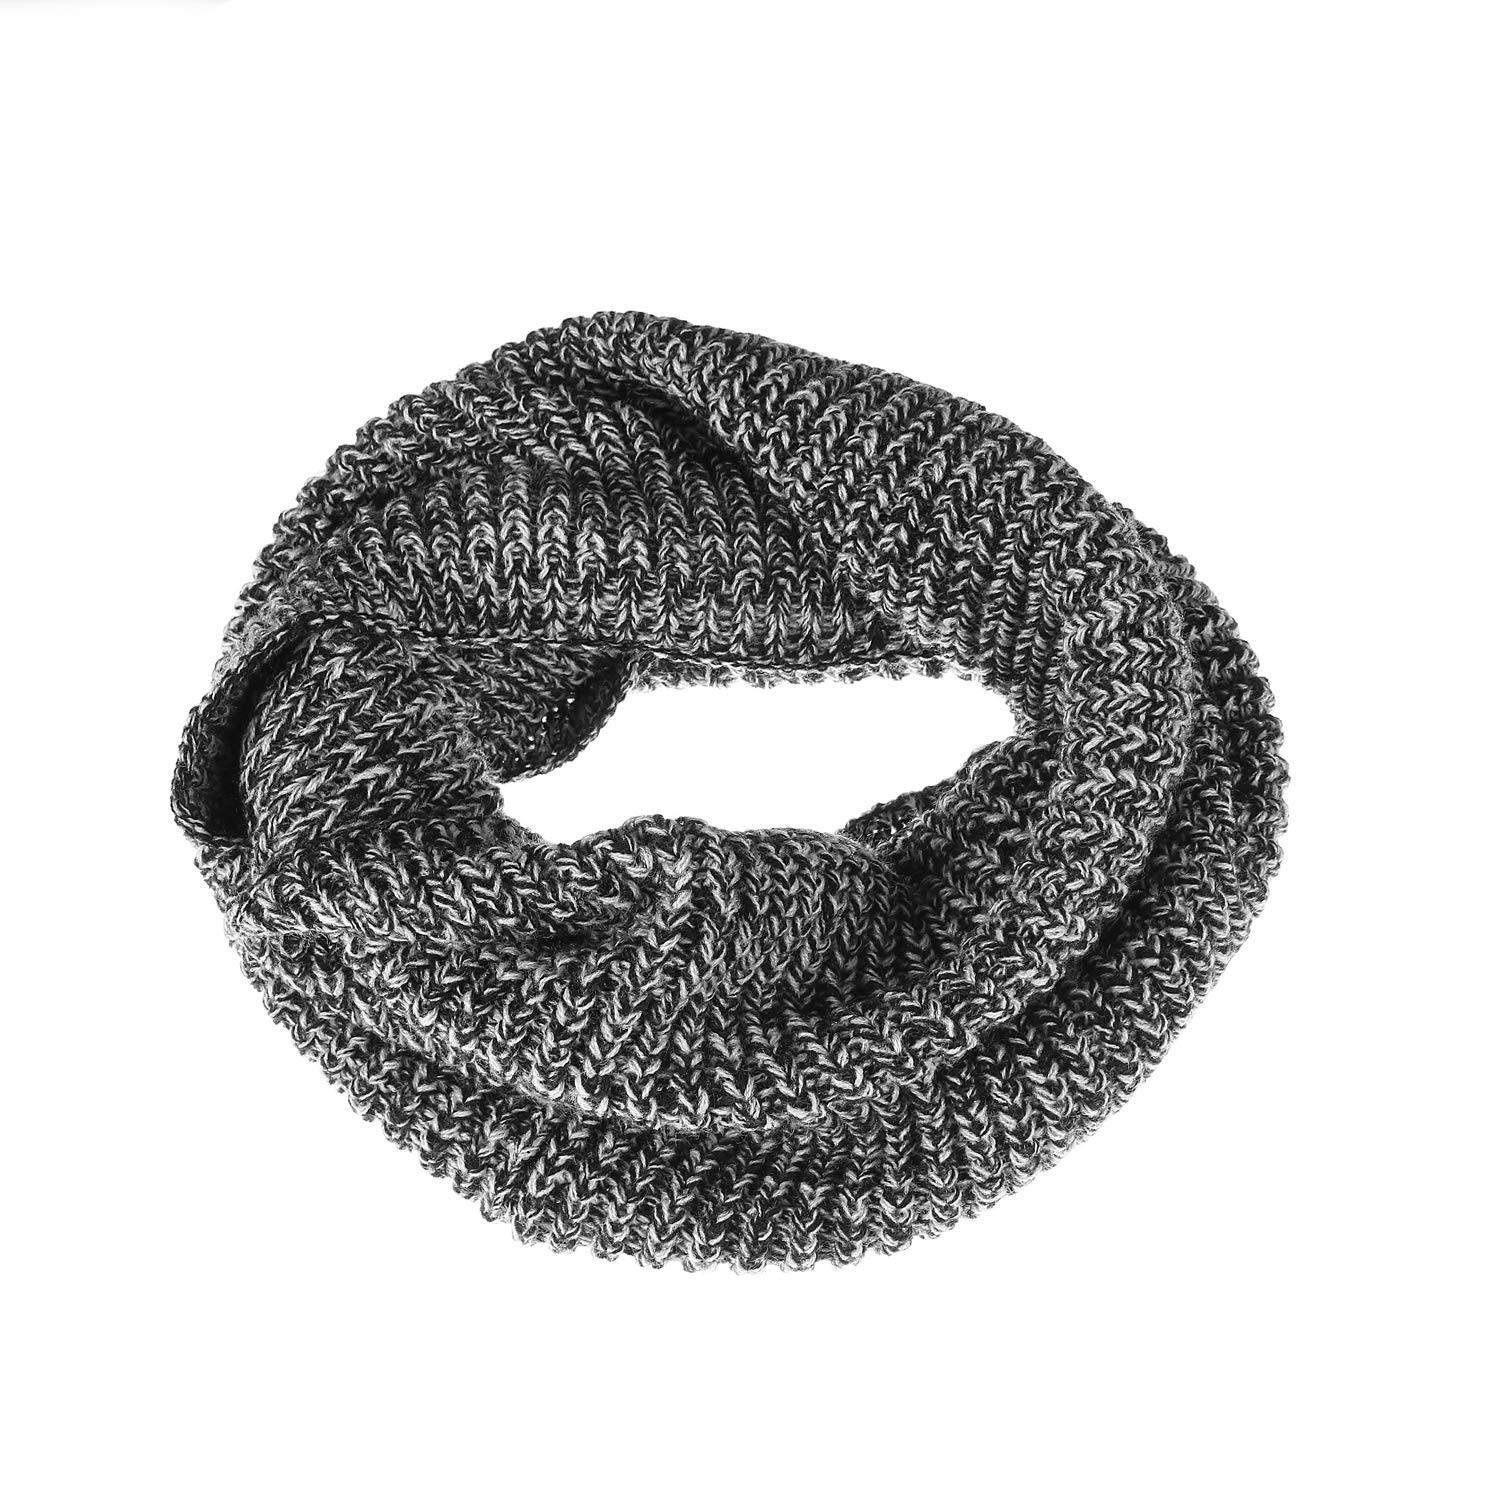 Black White Mix Winter Knit Infinity ScarfMen&Women Thick Warm Circle Loop Scarf Neck Warmer by Aurya